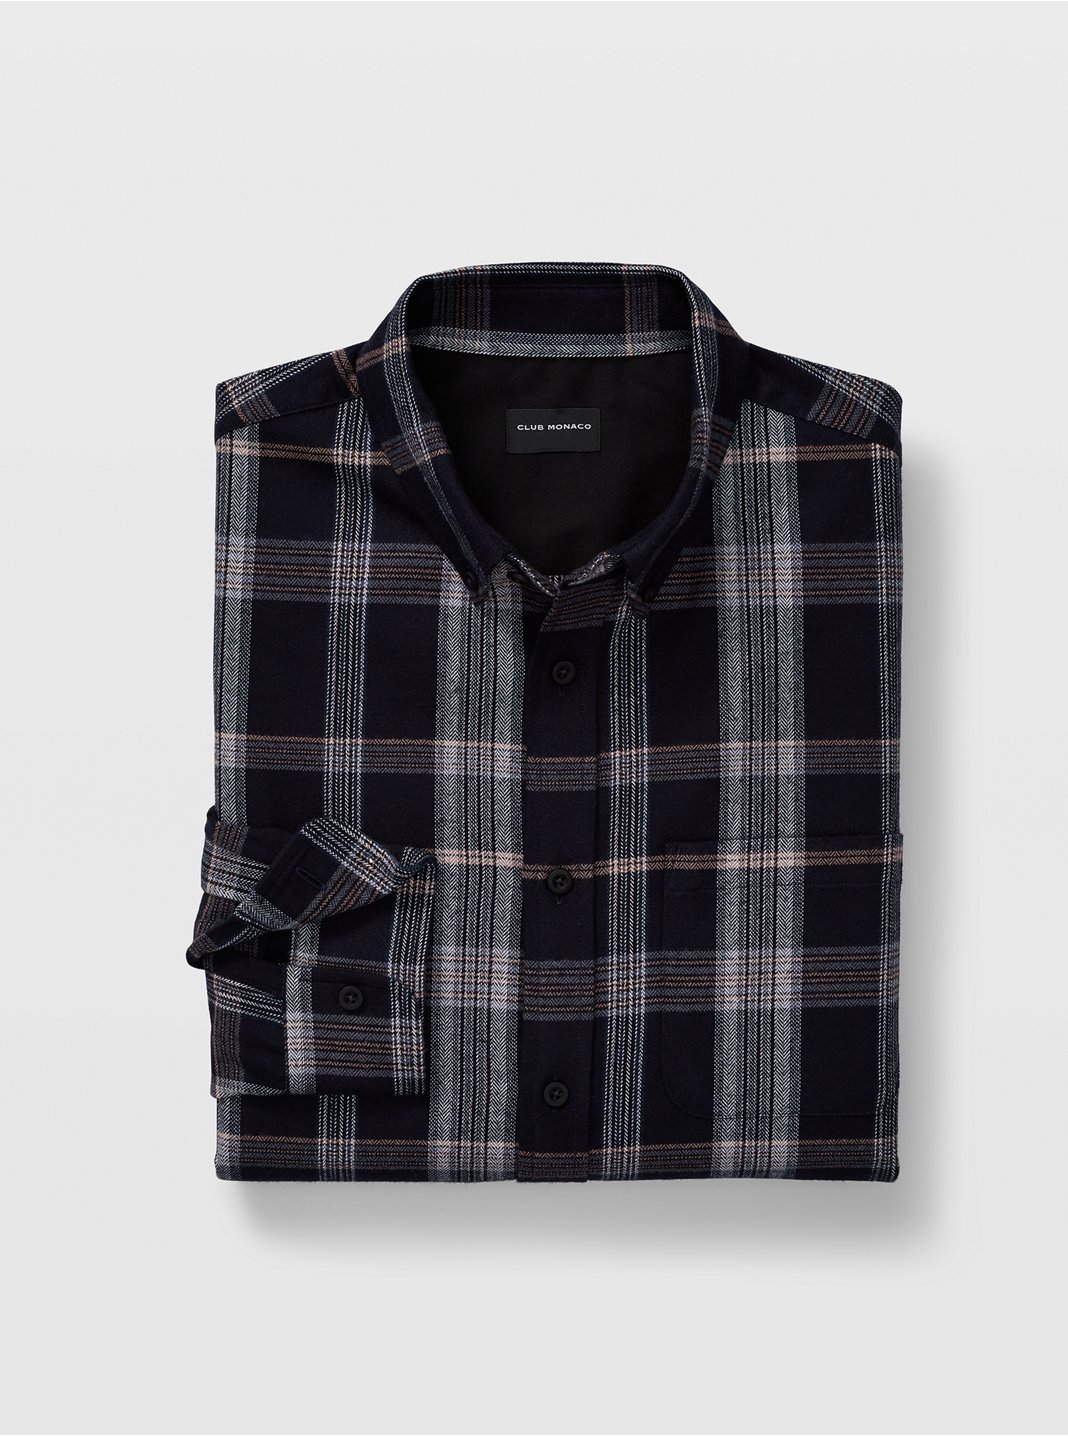 Slim Tonal Plaid Shirt